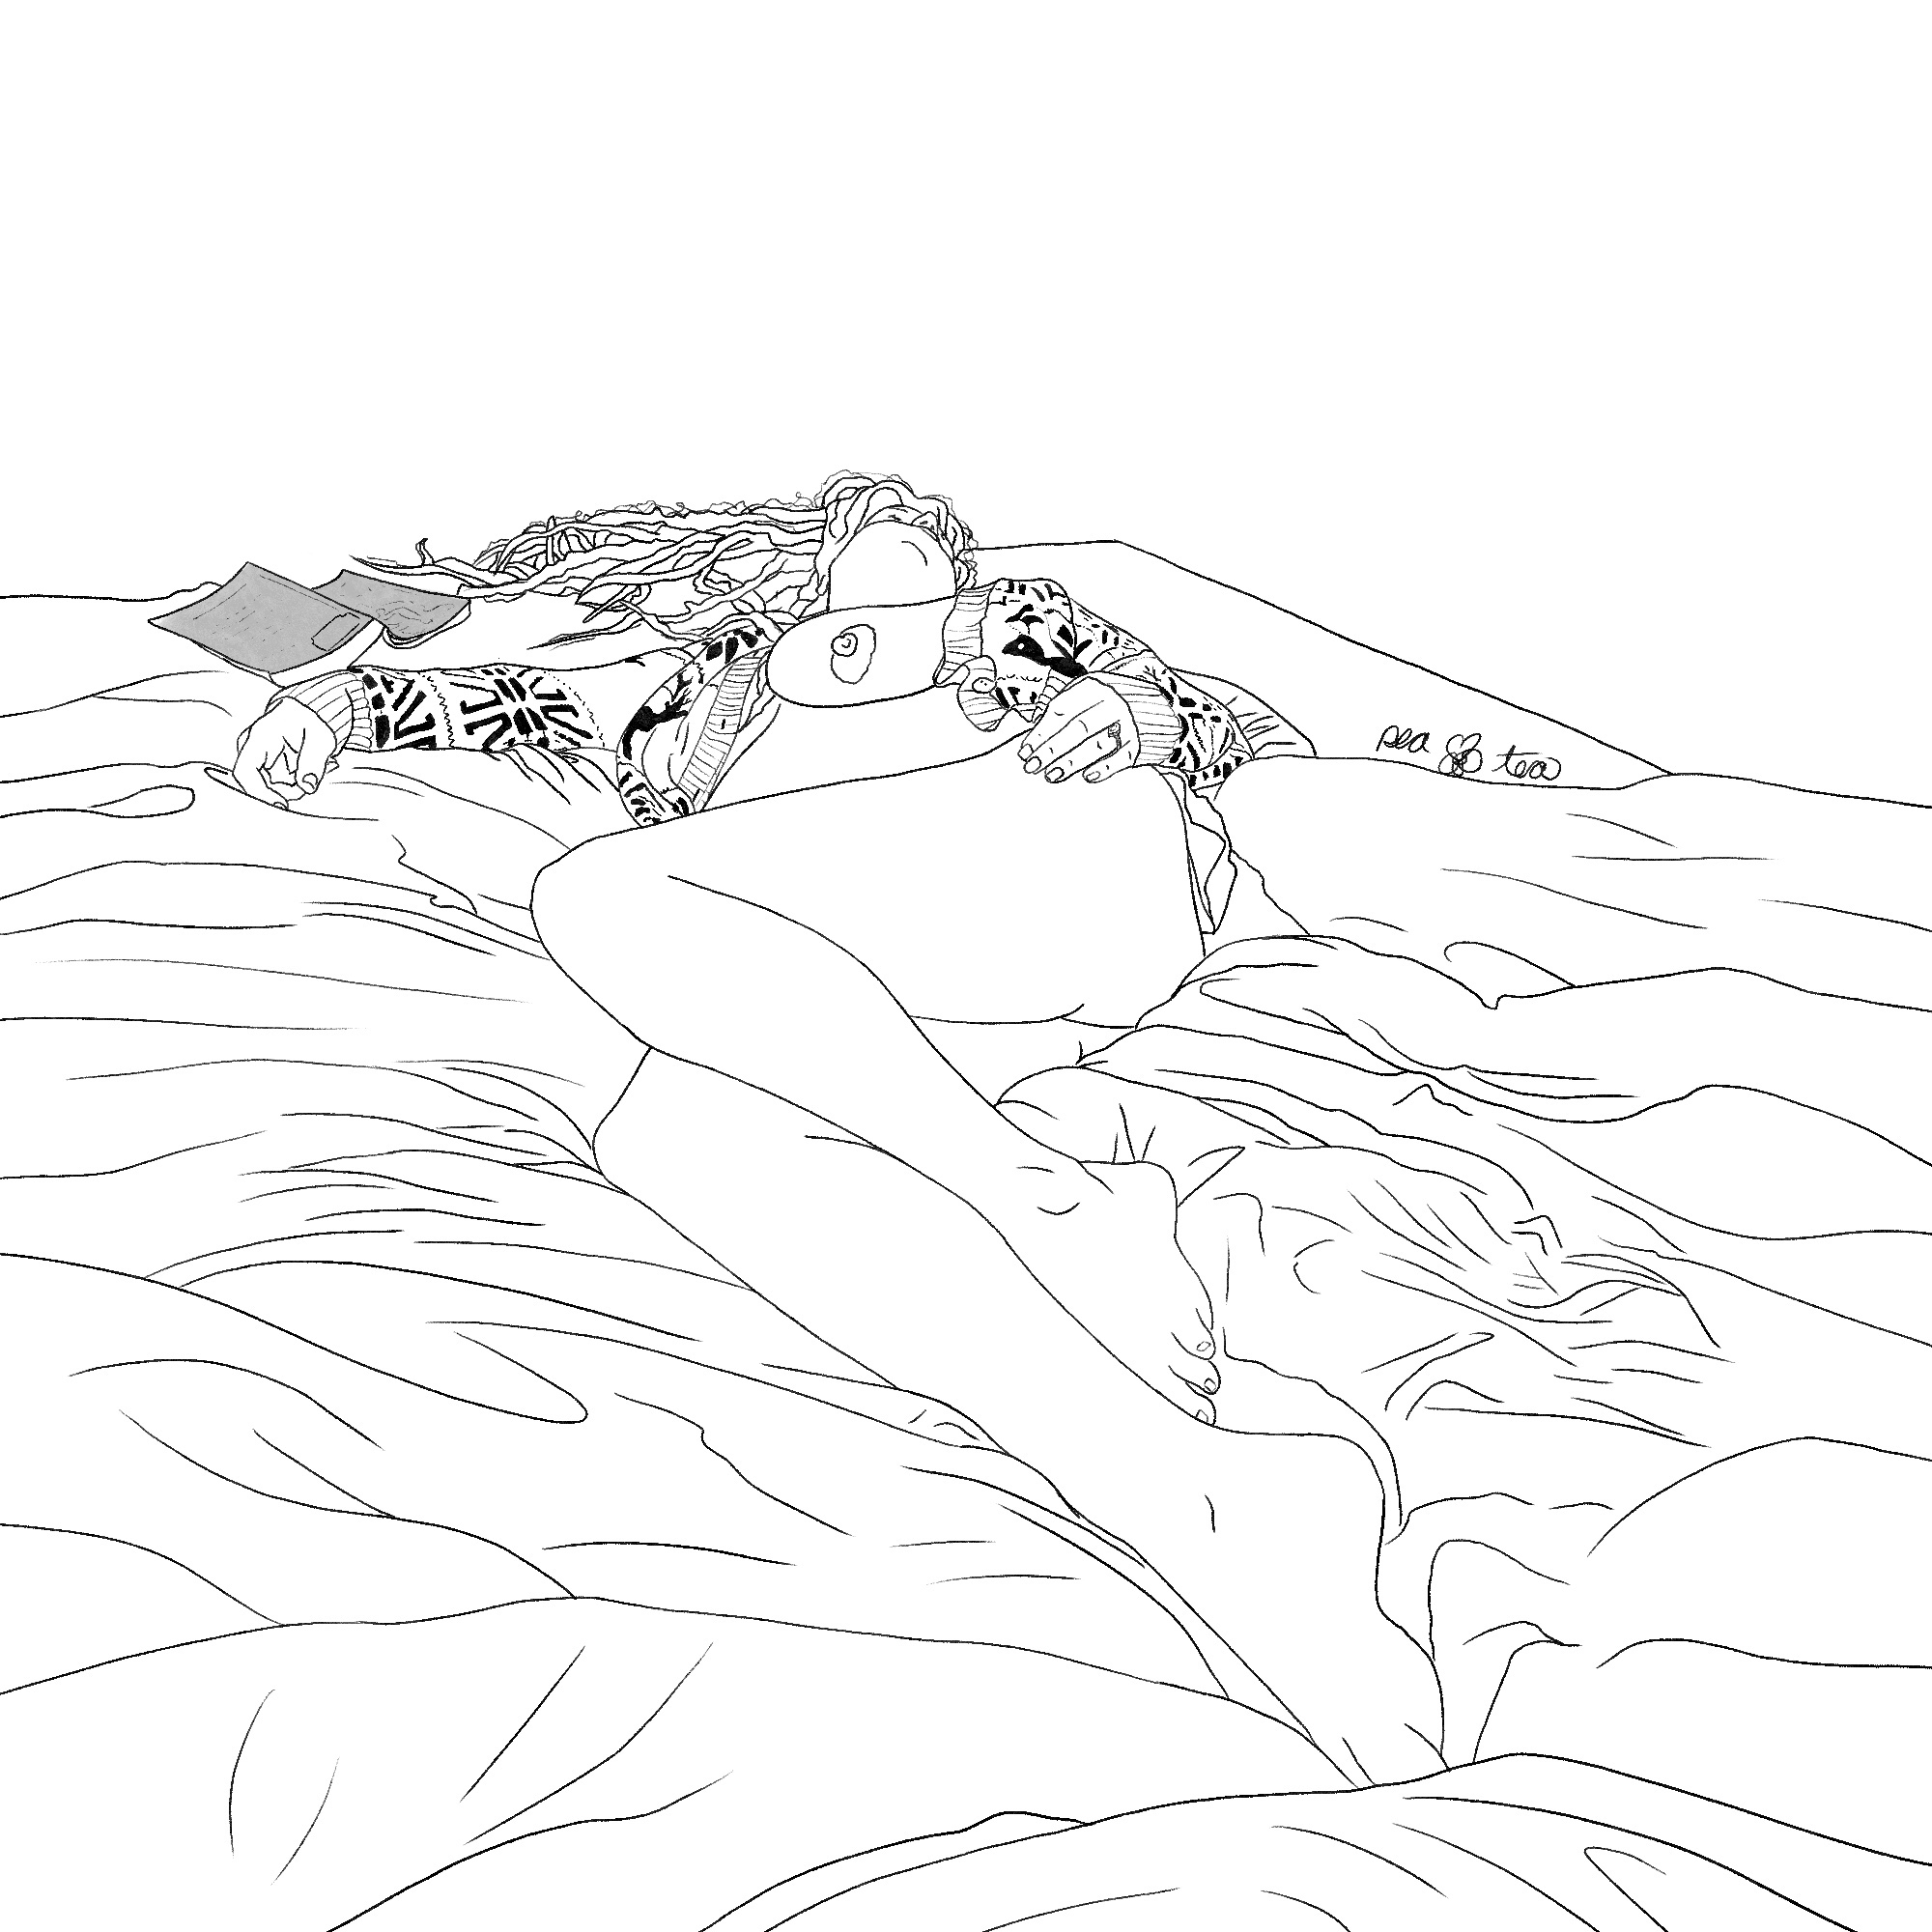 Pencil sketch of a nude woman in recline on a tousled bed. A book lays open, face down and forgotten near one outstretched arm as she sleeps.